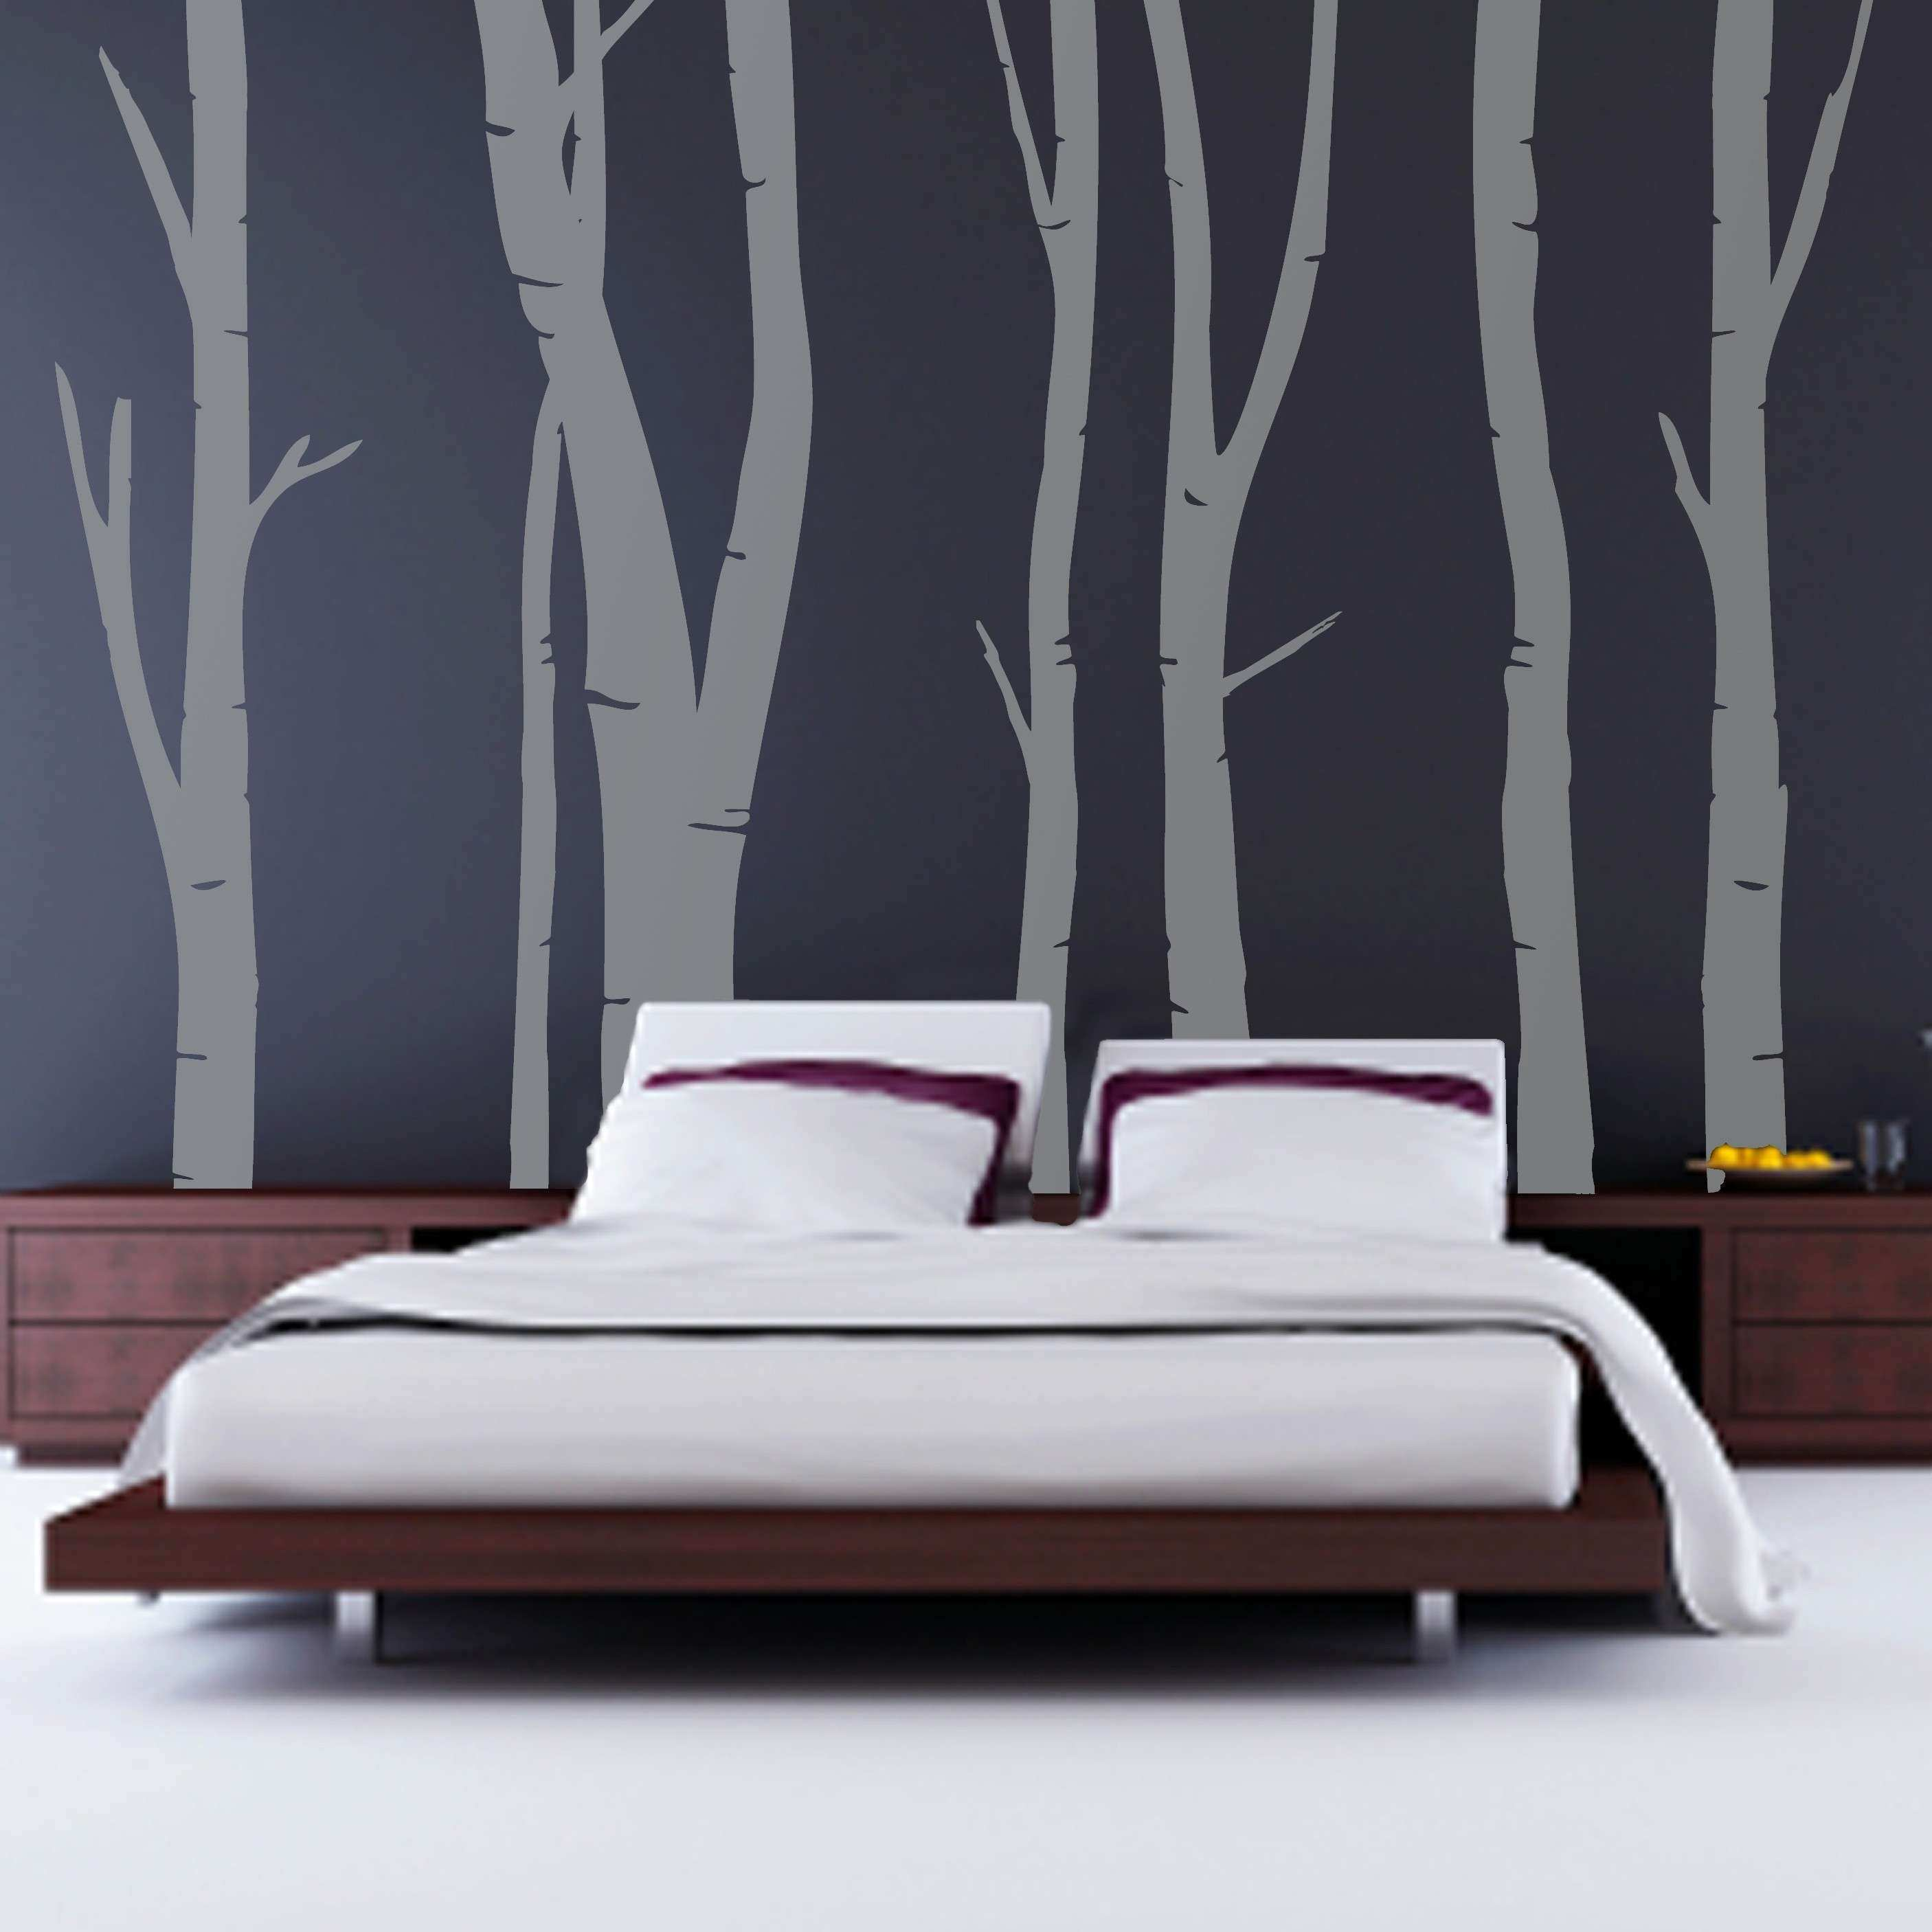 31 New Wall Decals